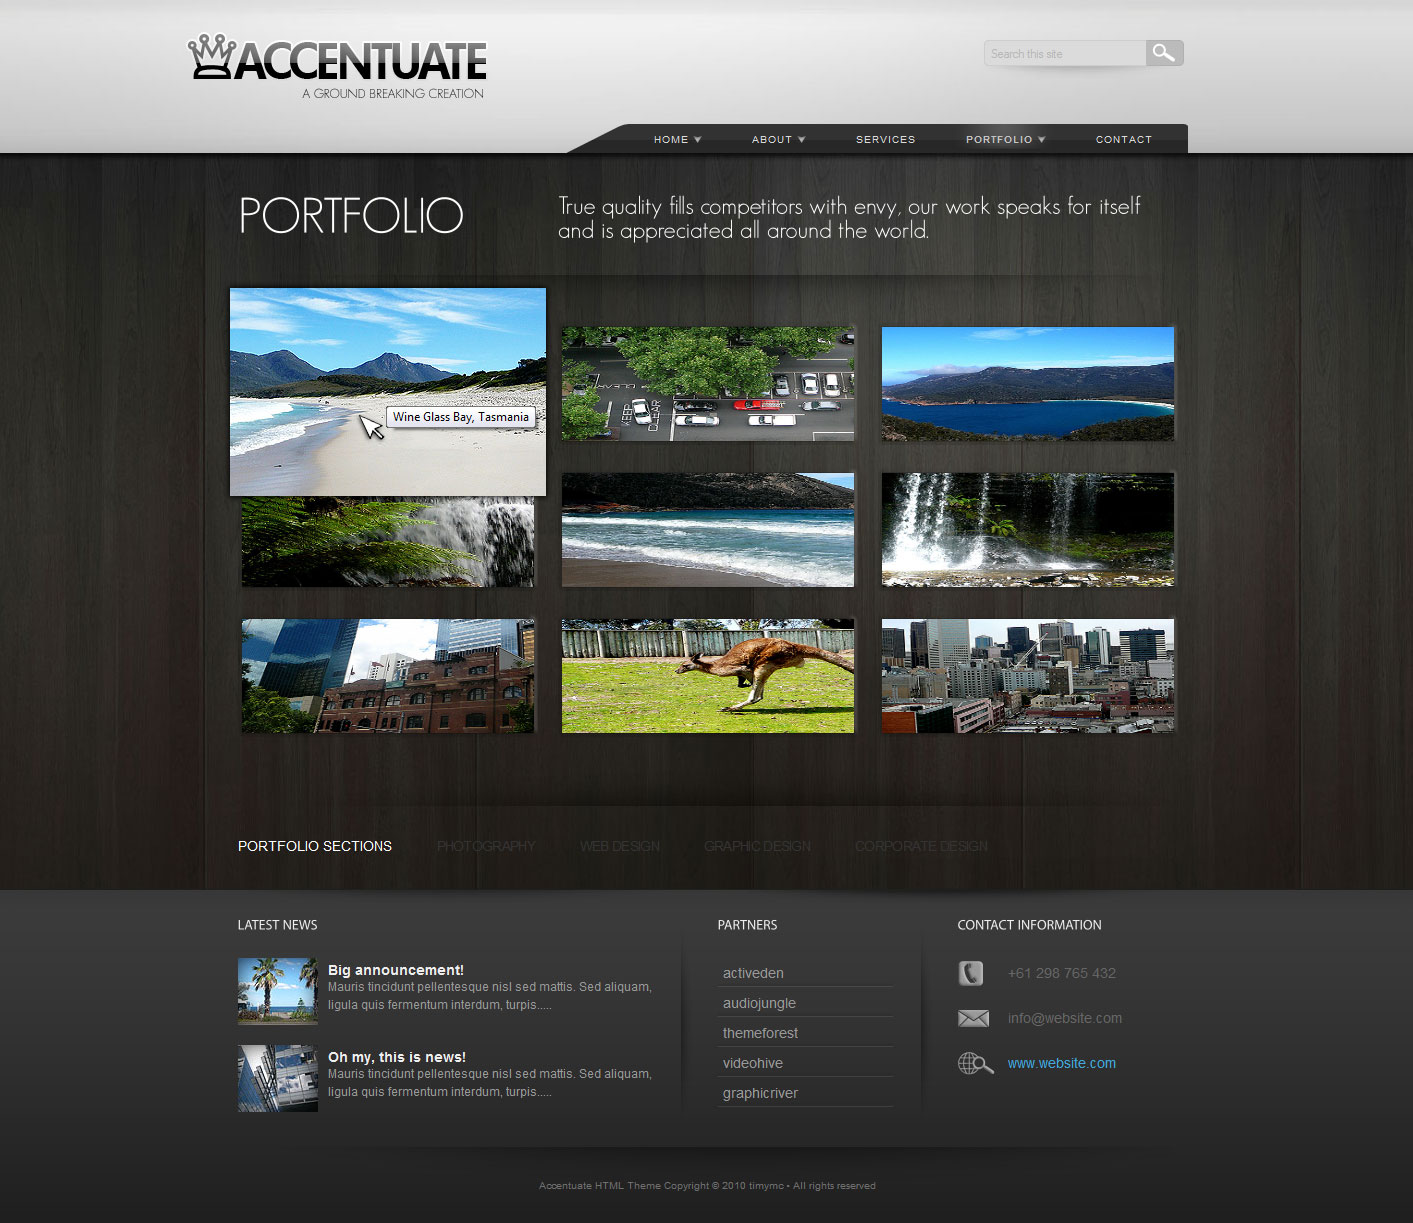 Accentuate Premium HTML Theme / Business Portfolio - Portfolio - Accentuate comes with 2 portfolio options, this one and another one that has titles and descriptions as well. There is a custom made flash-like hover effect which makes the thumbnail pop out when hovered over (done with jQuery). Portfolio also supports video and flash with the PrettyPhoto plugin.